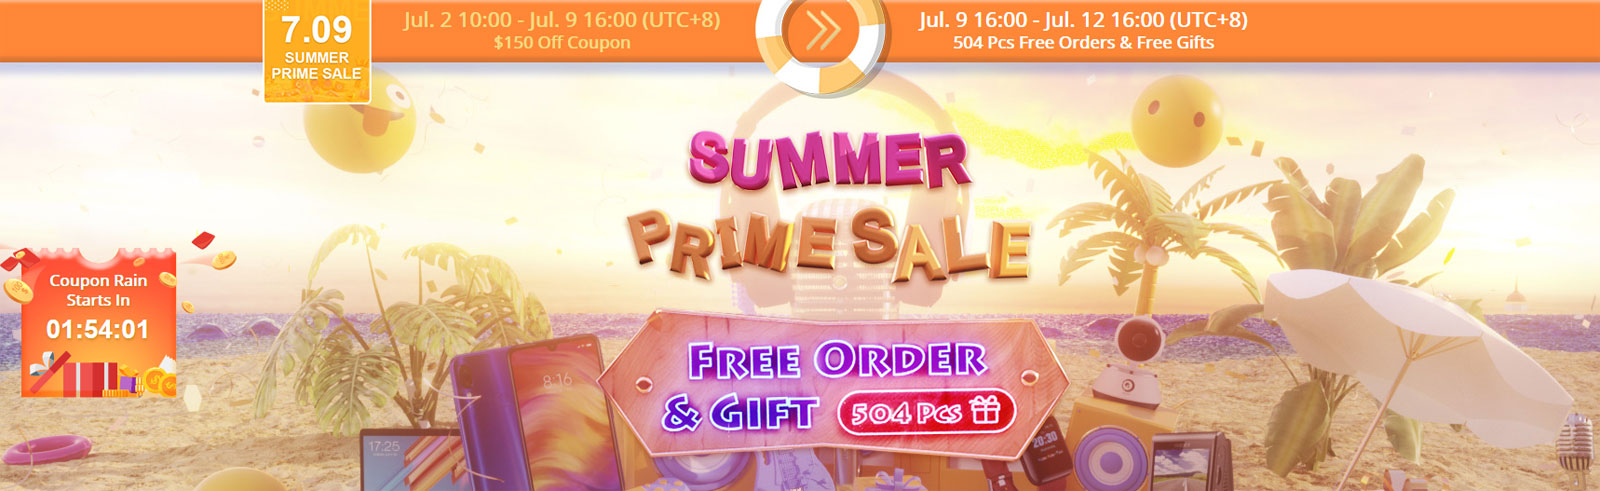 Banggood's Summer Prime Sale is on with coupons and deals on smartphones